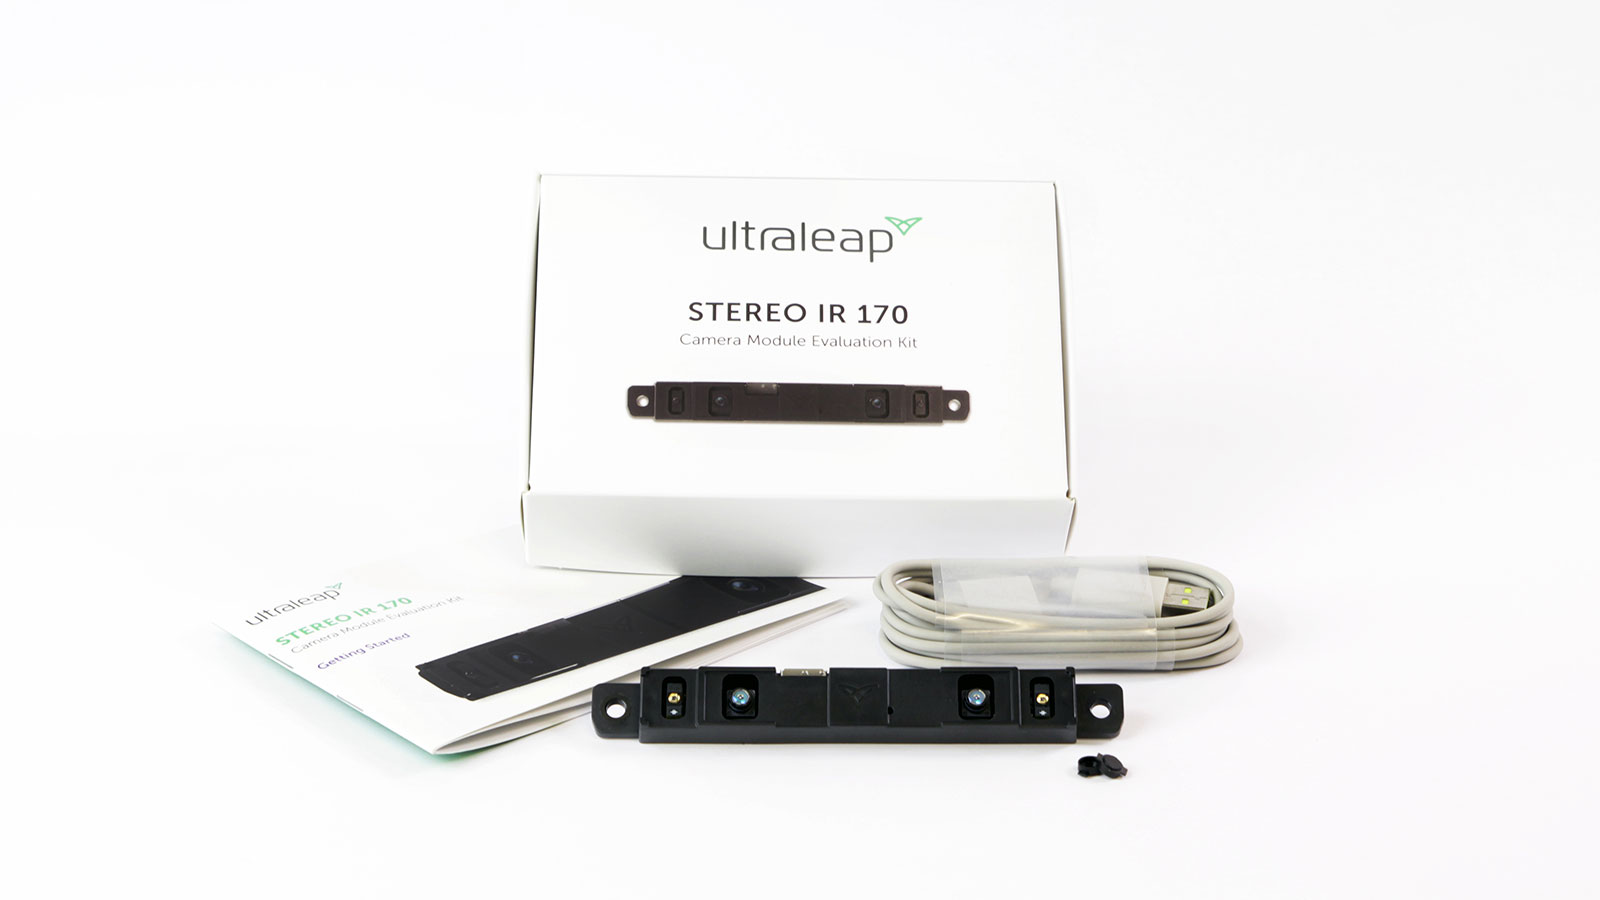 Ultraleap Stereo IR 170 evaluation kit hand tracking